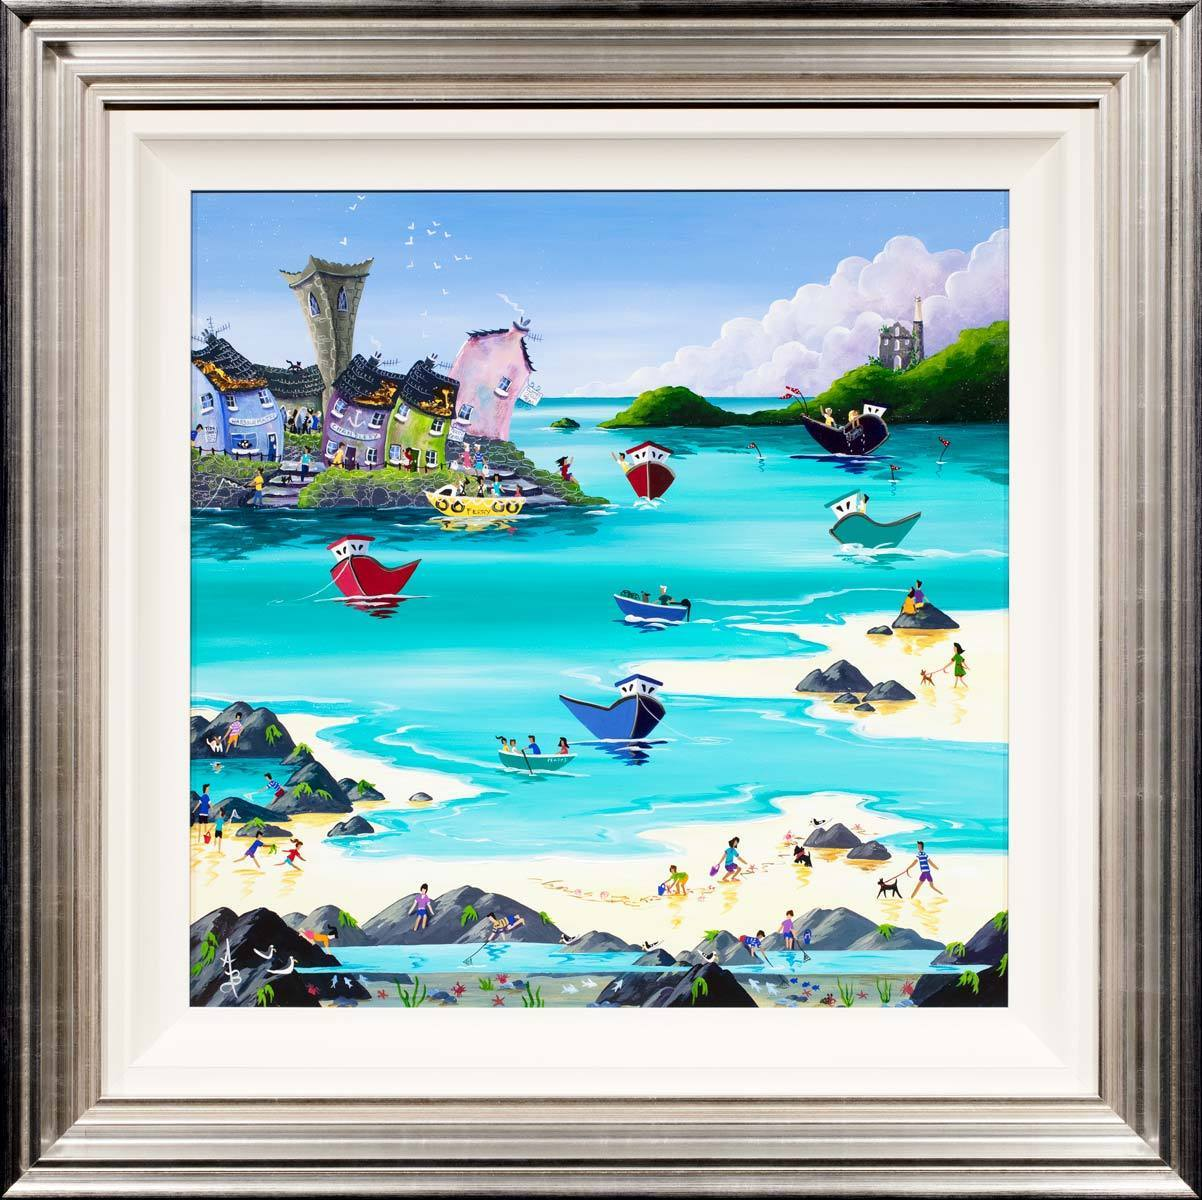 Rock Pool Treasure - Original Anne Blundell Framed